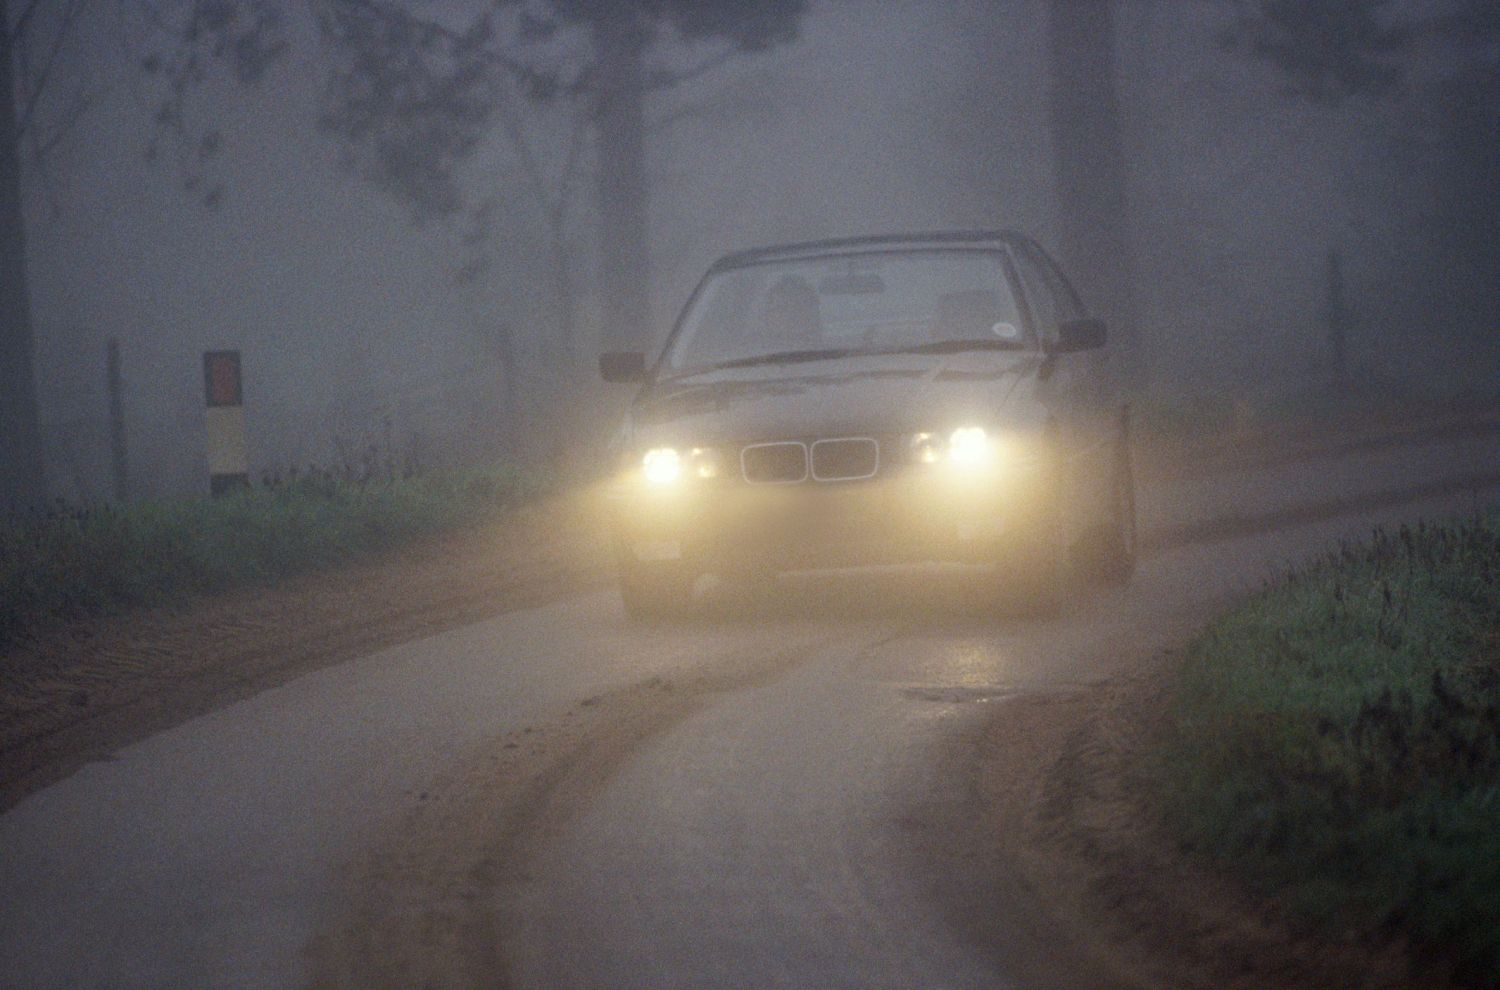 bmw 5 series germany driving along country lane in fog, england